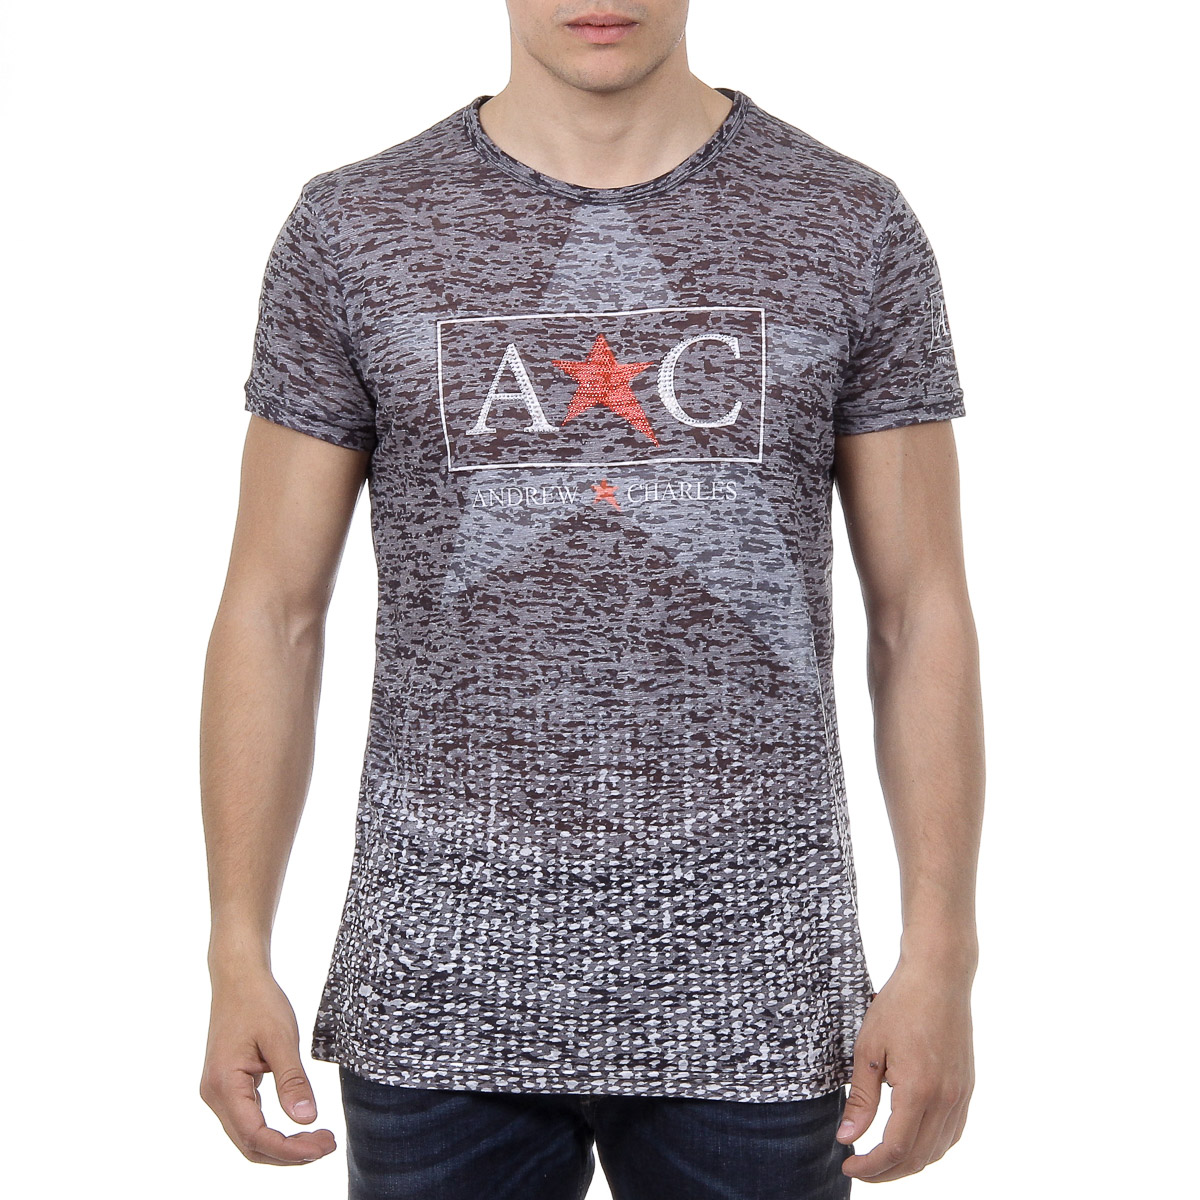 c258bc4583a4 Andrew Charles Mens T-Shirt Round Neck Short Sleeves   Products   Sleeves,  Mens tops, Light blue